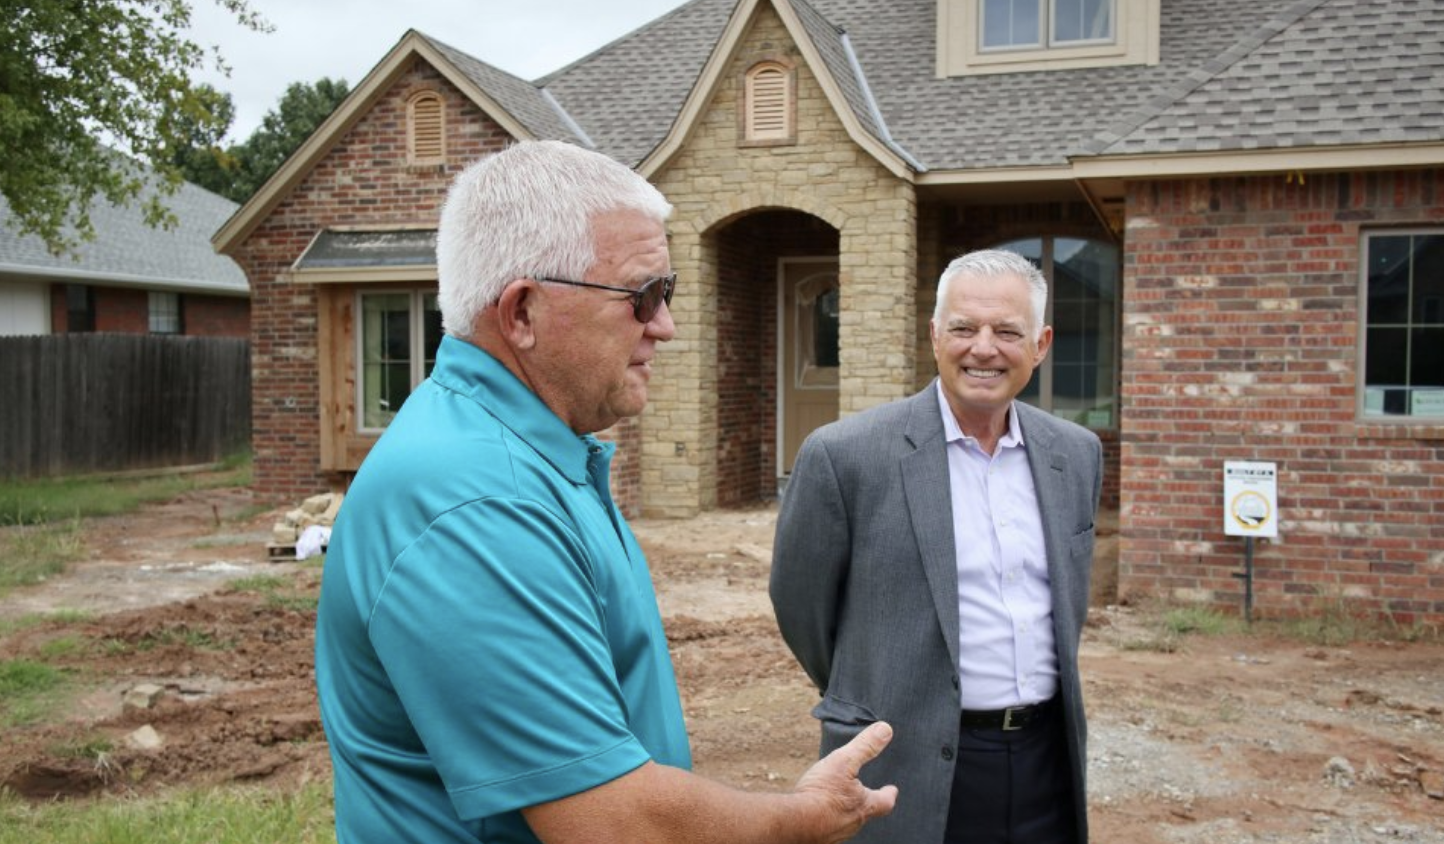 Builder Confidence At 12 Year High Oshba Home Dodge Neon Wiring Diagram Dakota Radio Free Picture Jim Campbell Of Homes Left And Mike Means Executive Vice President The Oklahoma State Builders Association Stand Outside A